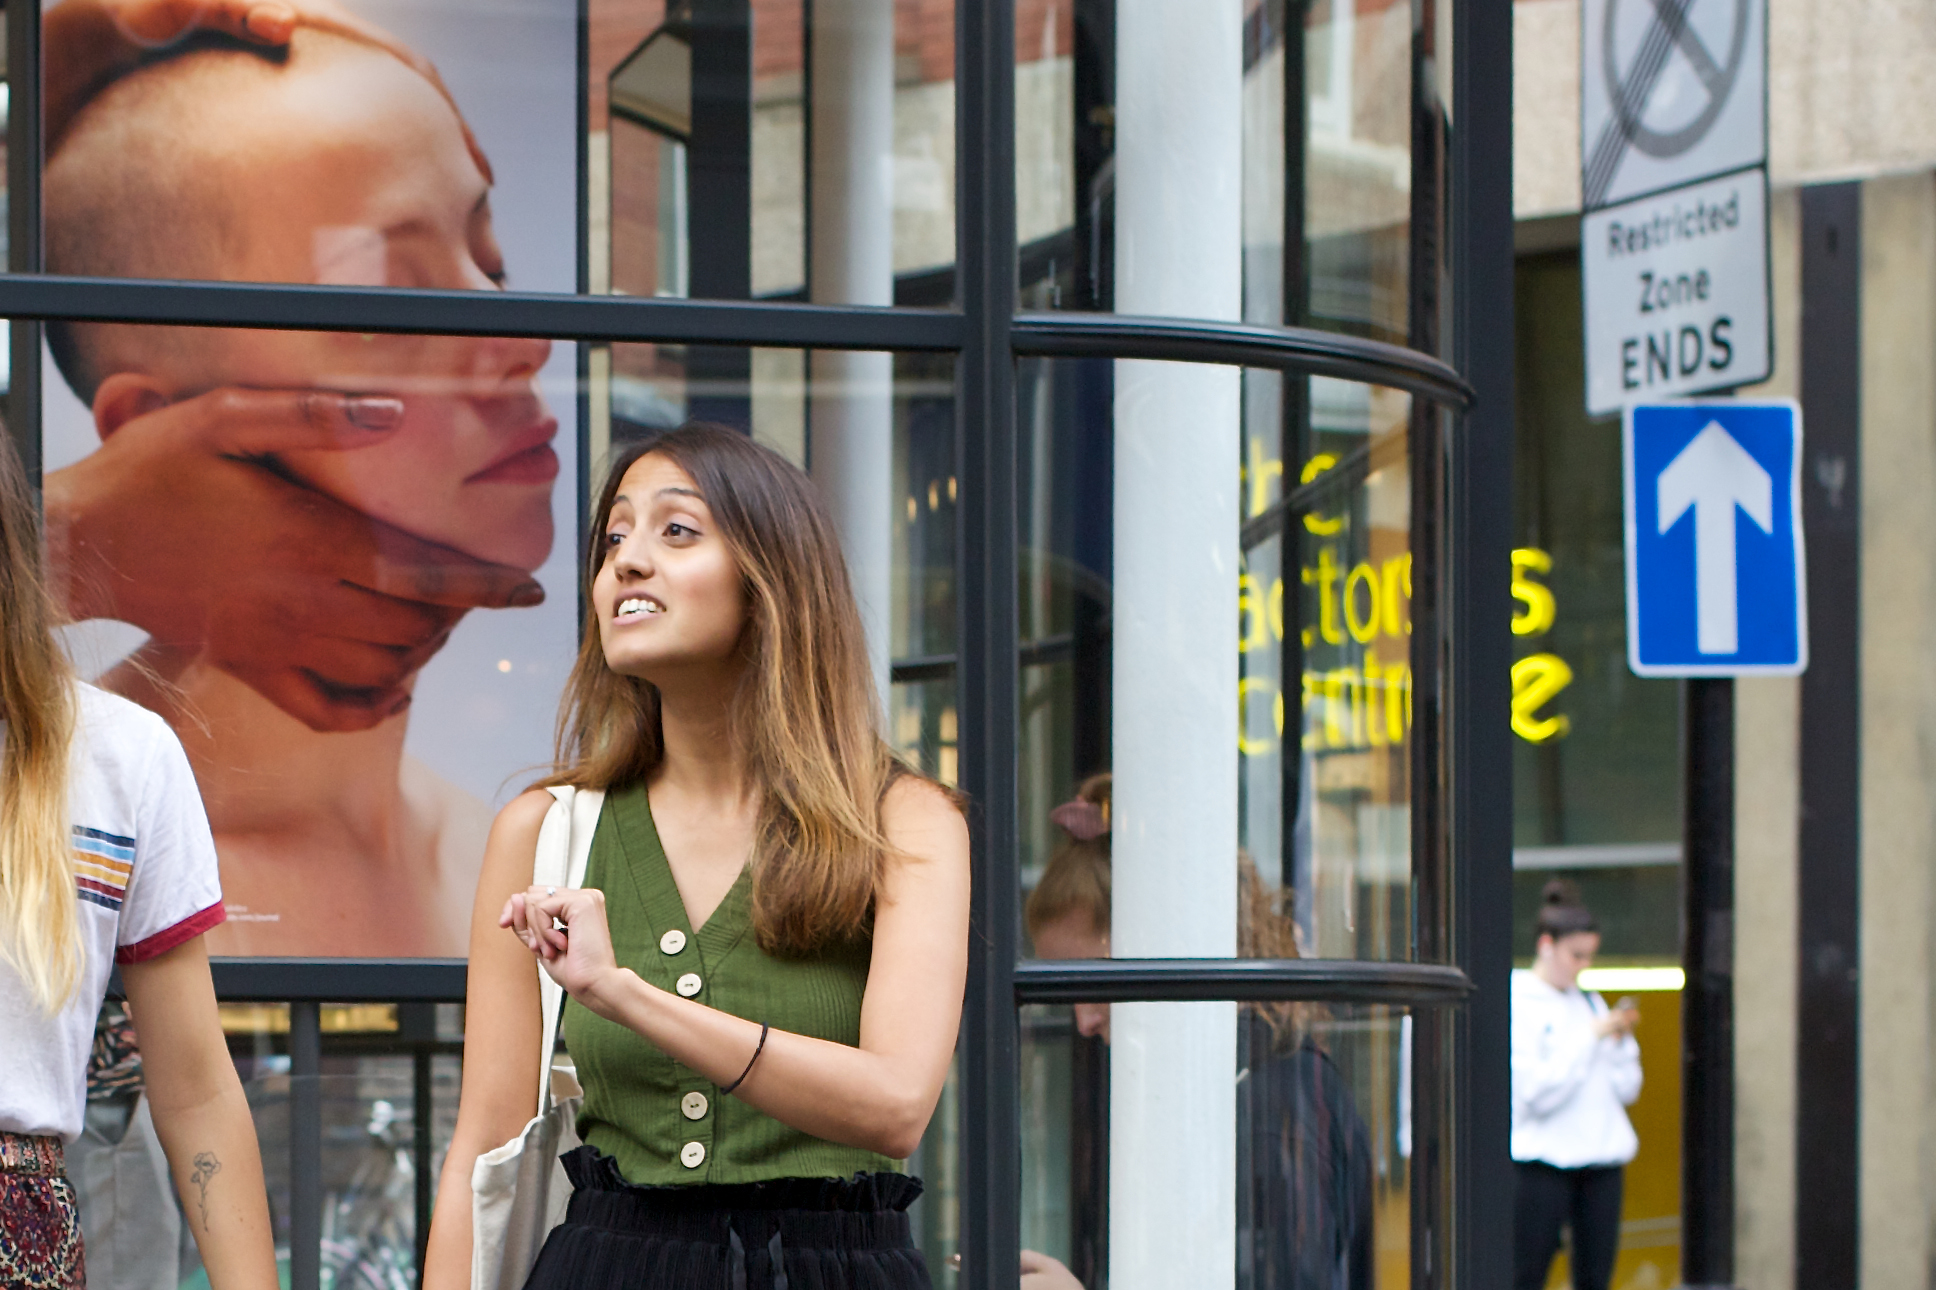 Woman in animated conversation. In a window behind her is a poster of person with shaven head being massaged by strong hands